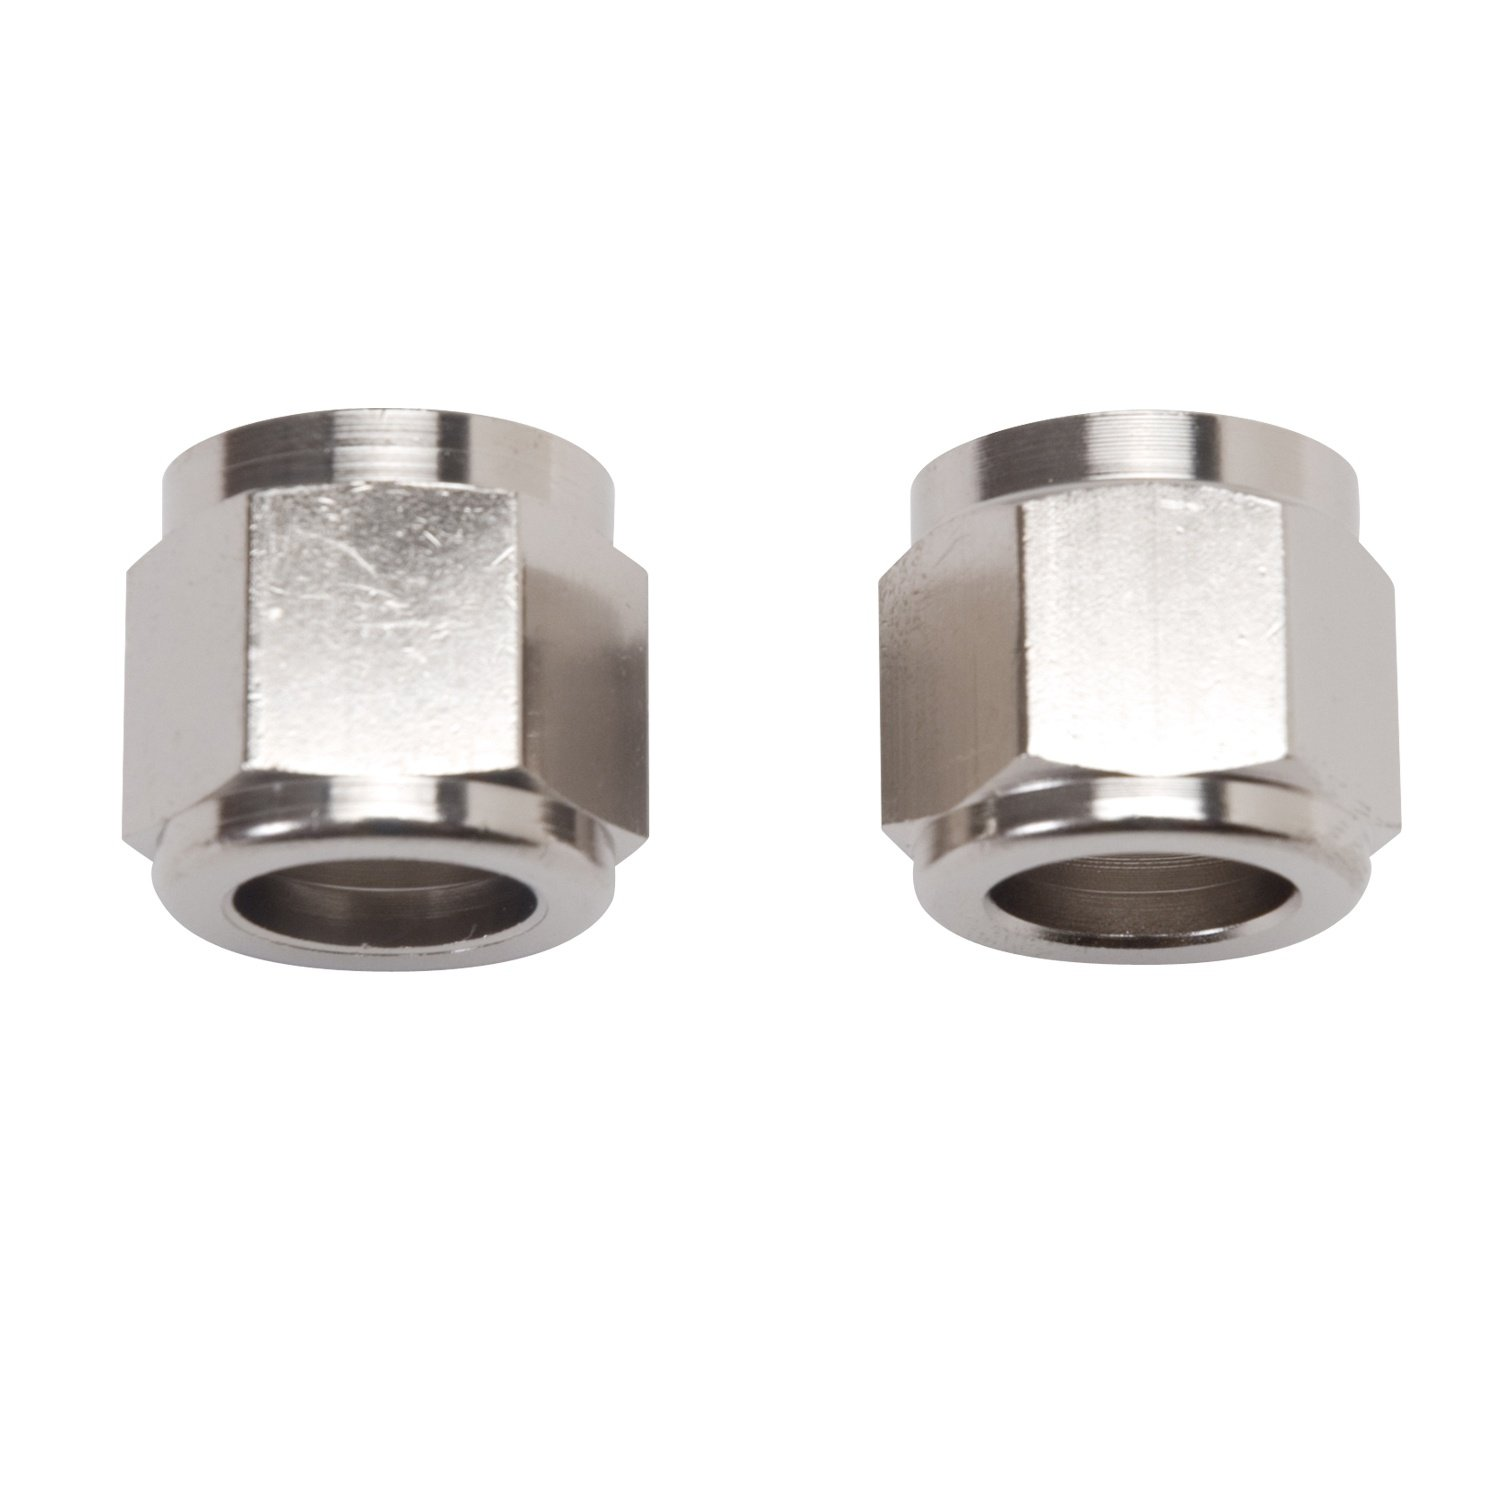 Russell 660581 Tube Nut - 2 Piece